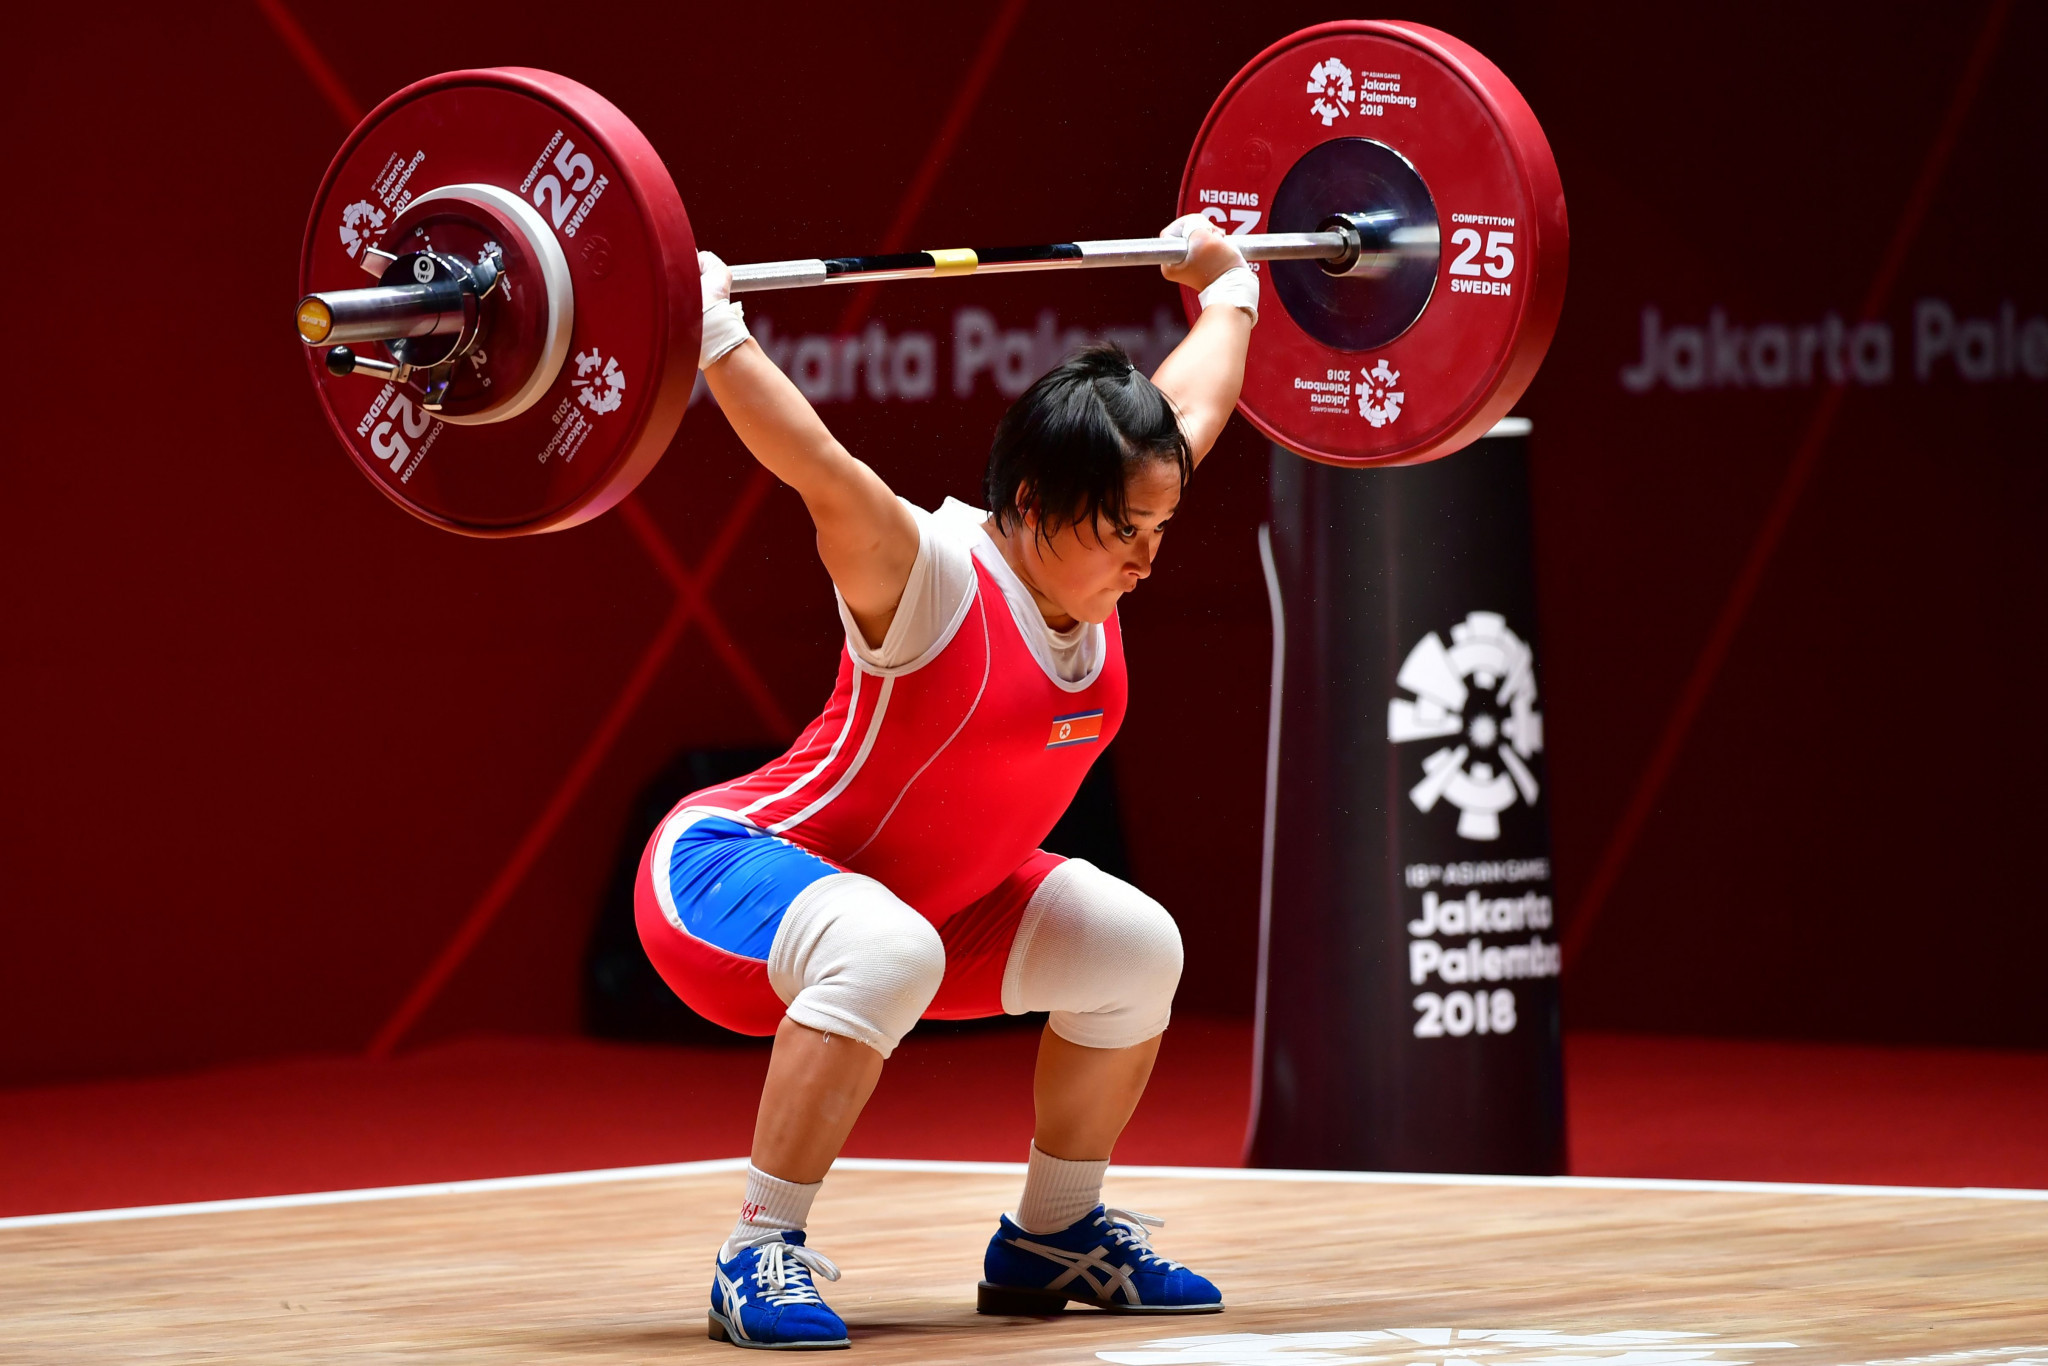 Compatriot Ri Song Gum had earlier come out on top in the women's 48kg event ©Getty Images